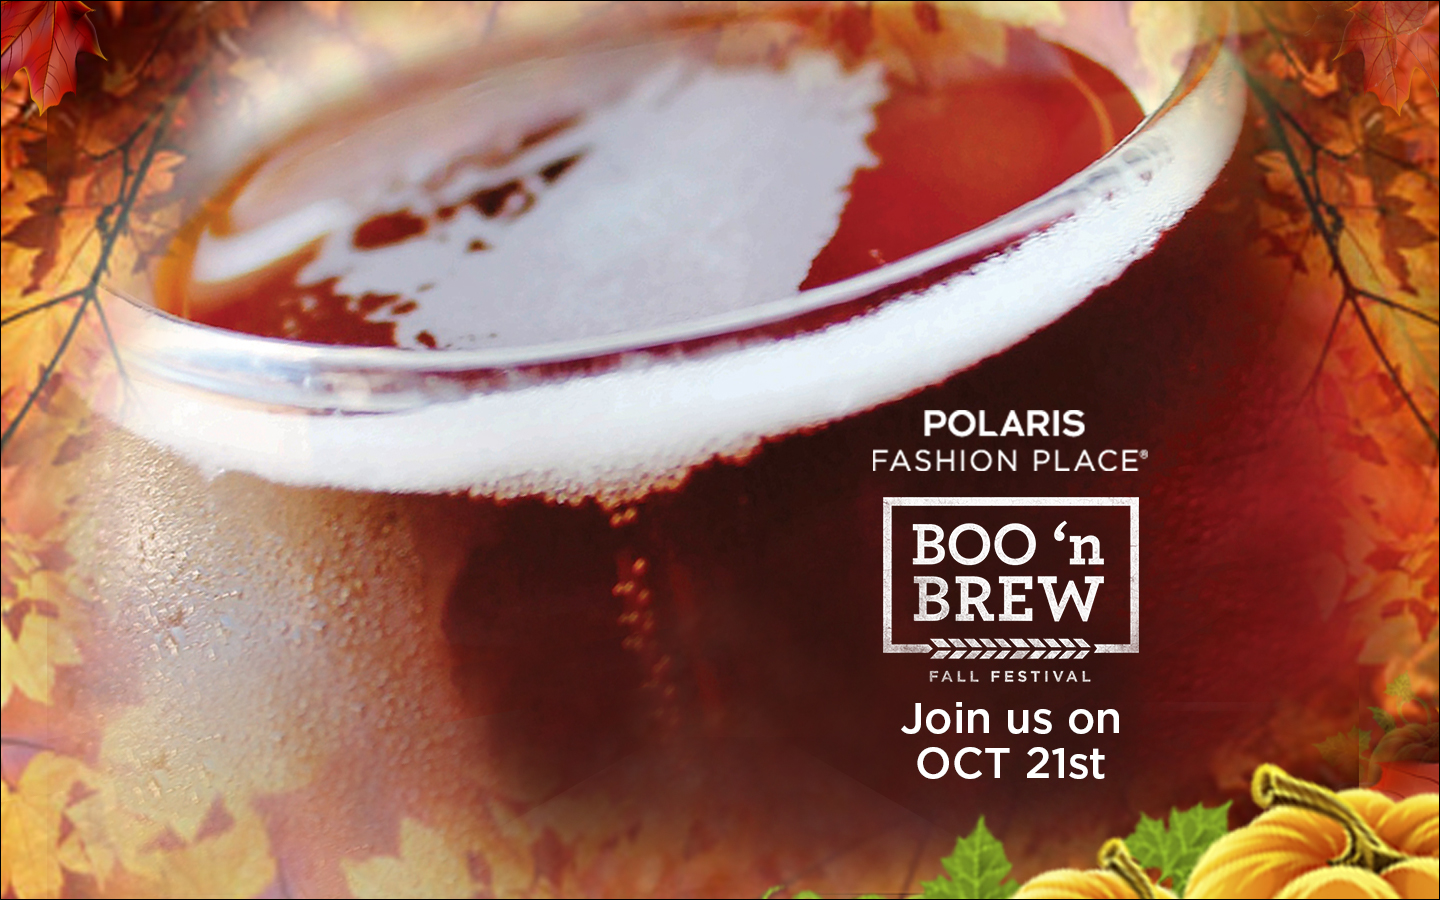 DATP31479_WCPO_Polaris_Fashion_Boo_Brew_1200x628